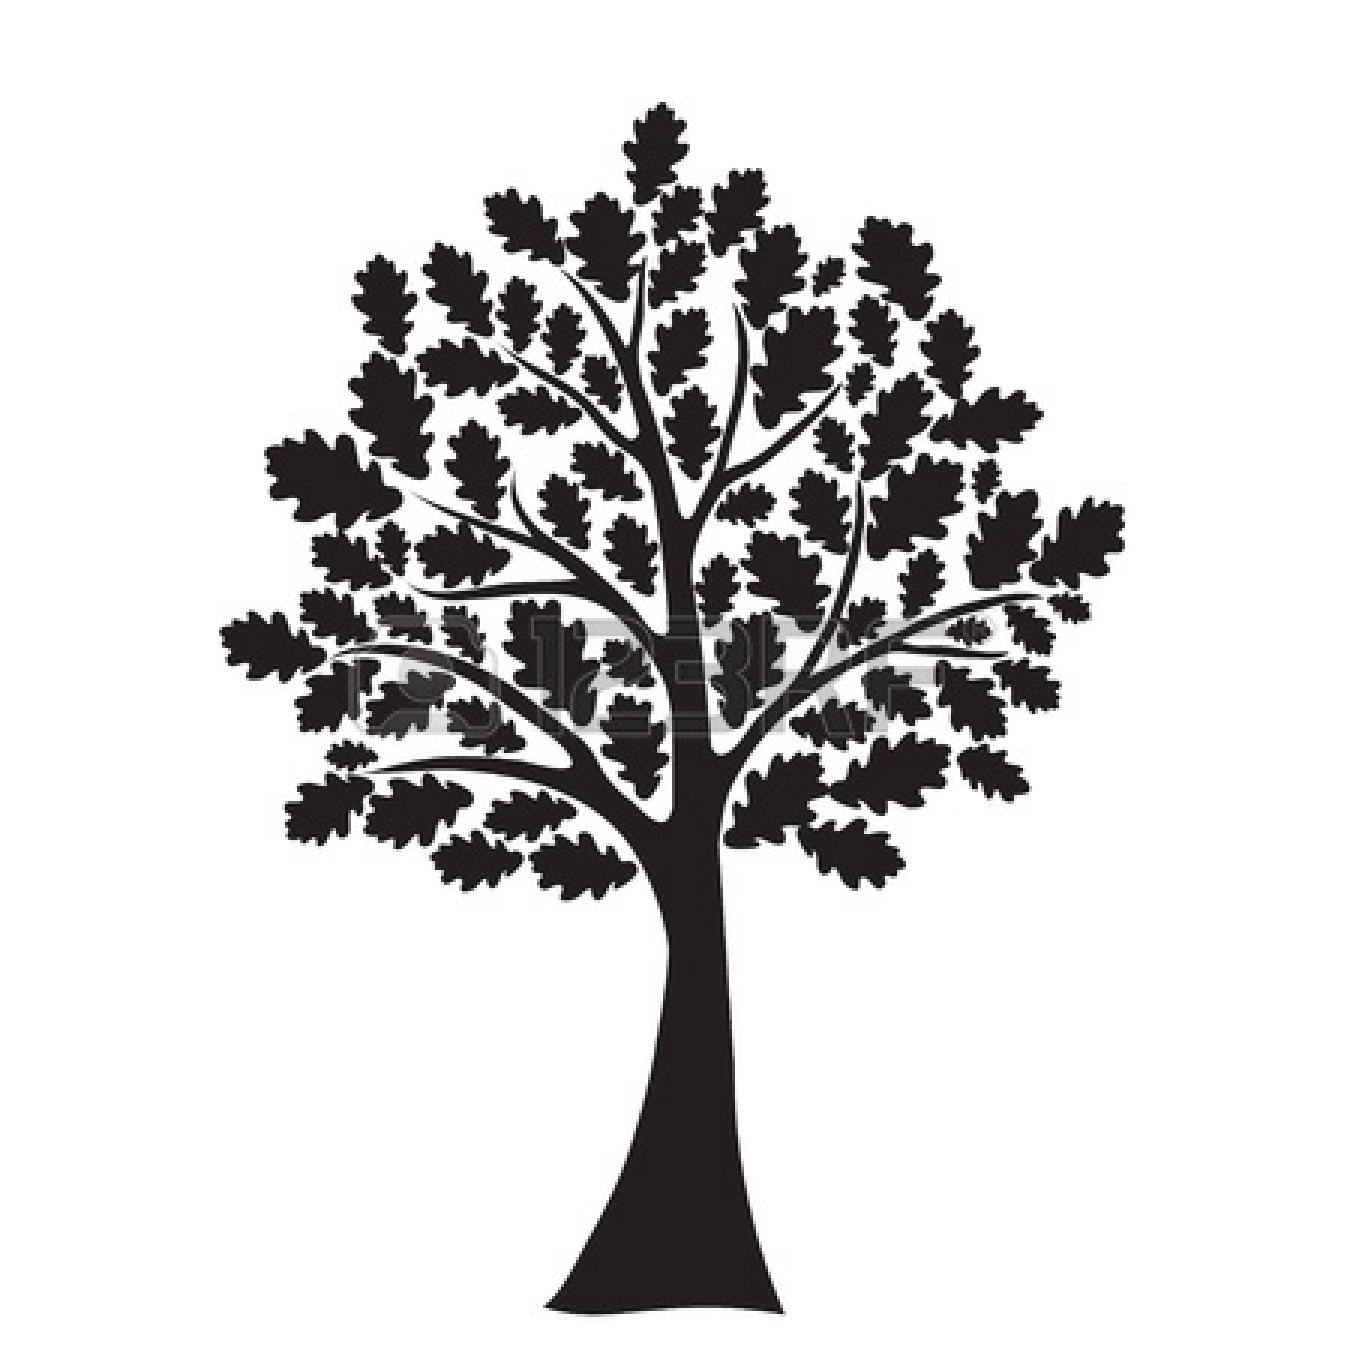 Pic Black And White Drawings Of Oak Trees Clipart Image